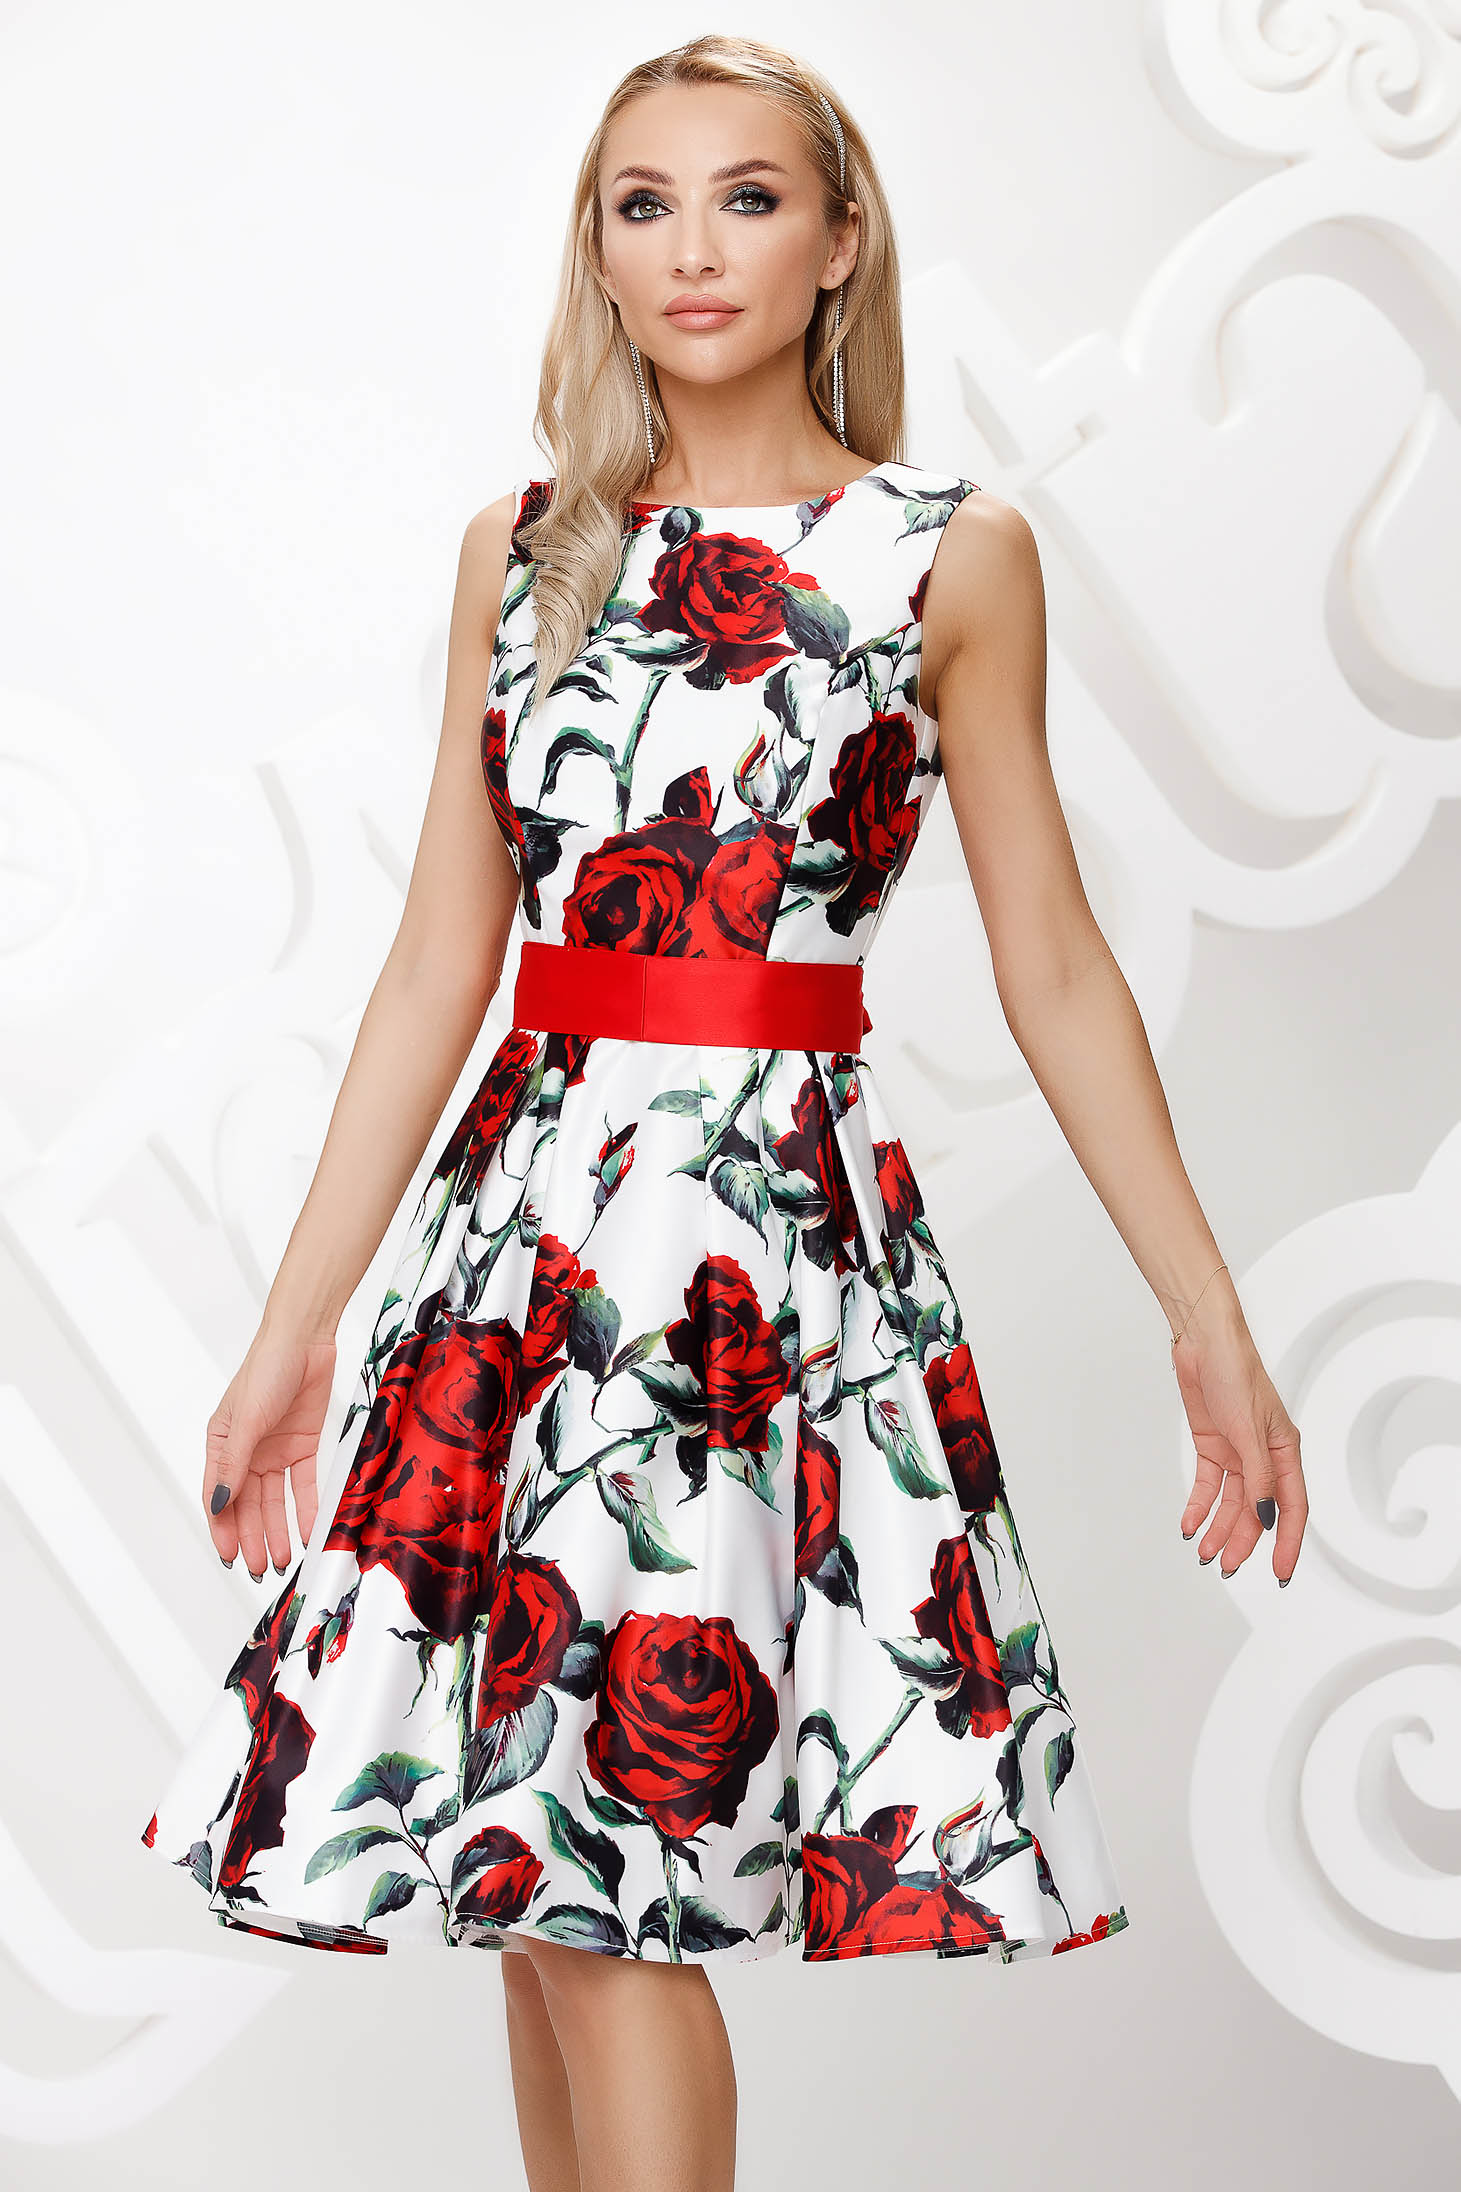 Dress from satin occasional cloche with floral print